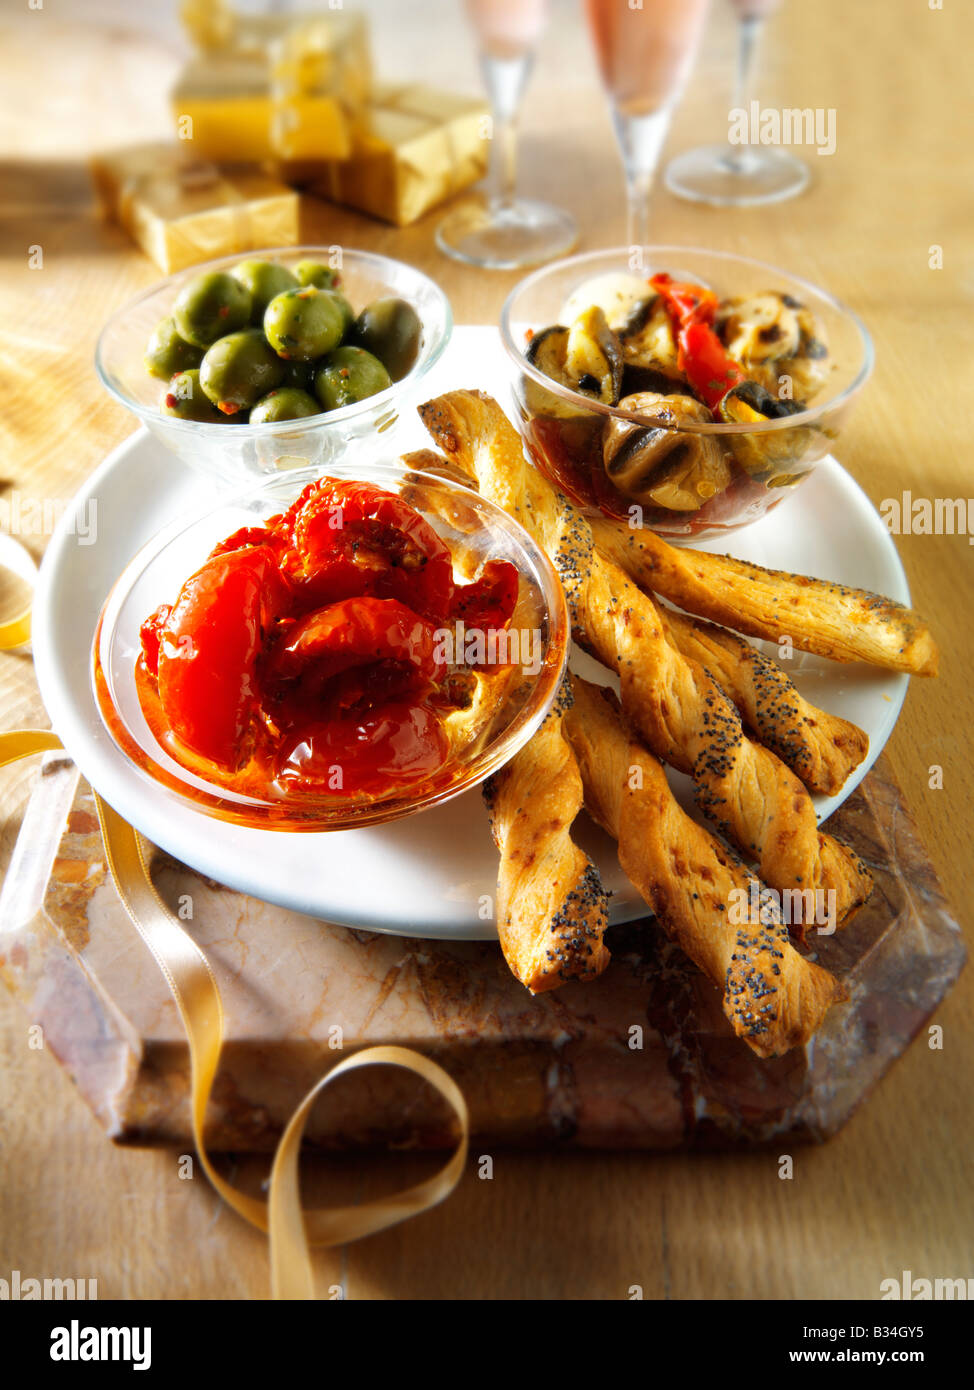 Party Food anti pasta - sun blushed tomatoes, mushroom and roast vegetables and olives with bread sticks. - Stock Image